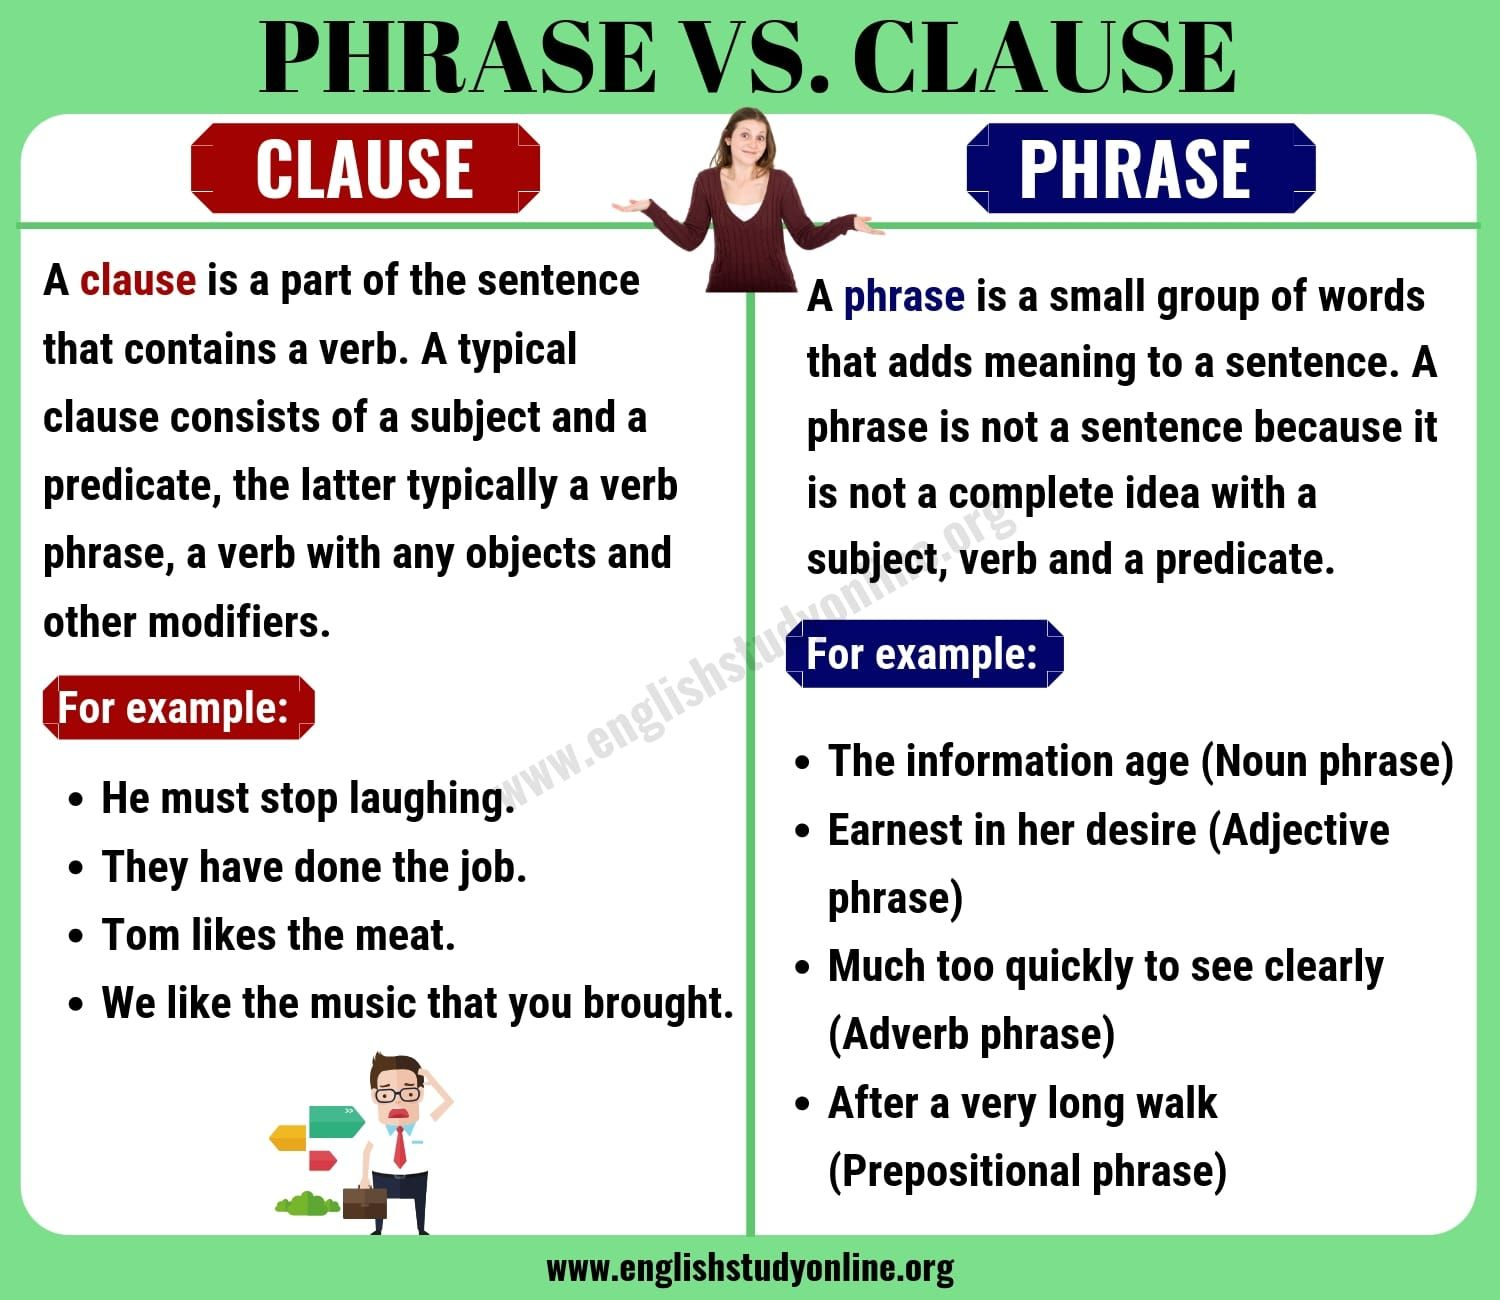 Phrase Vs Clause With Images